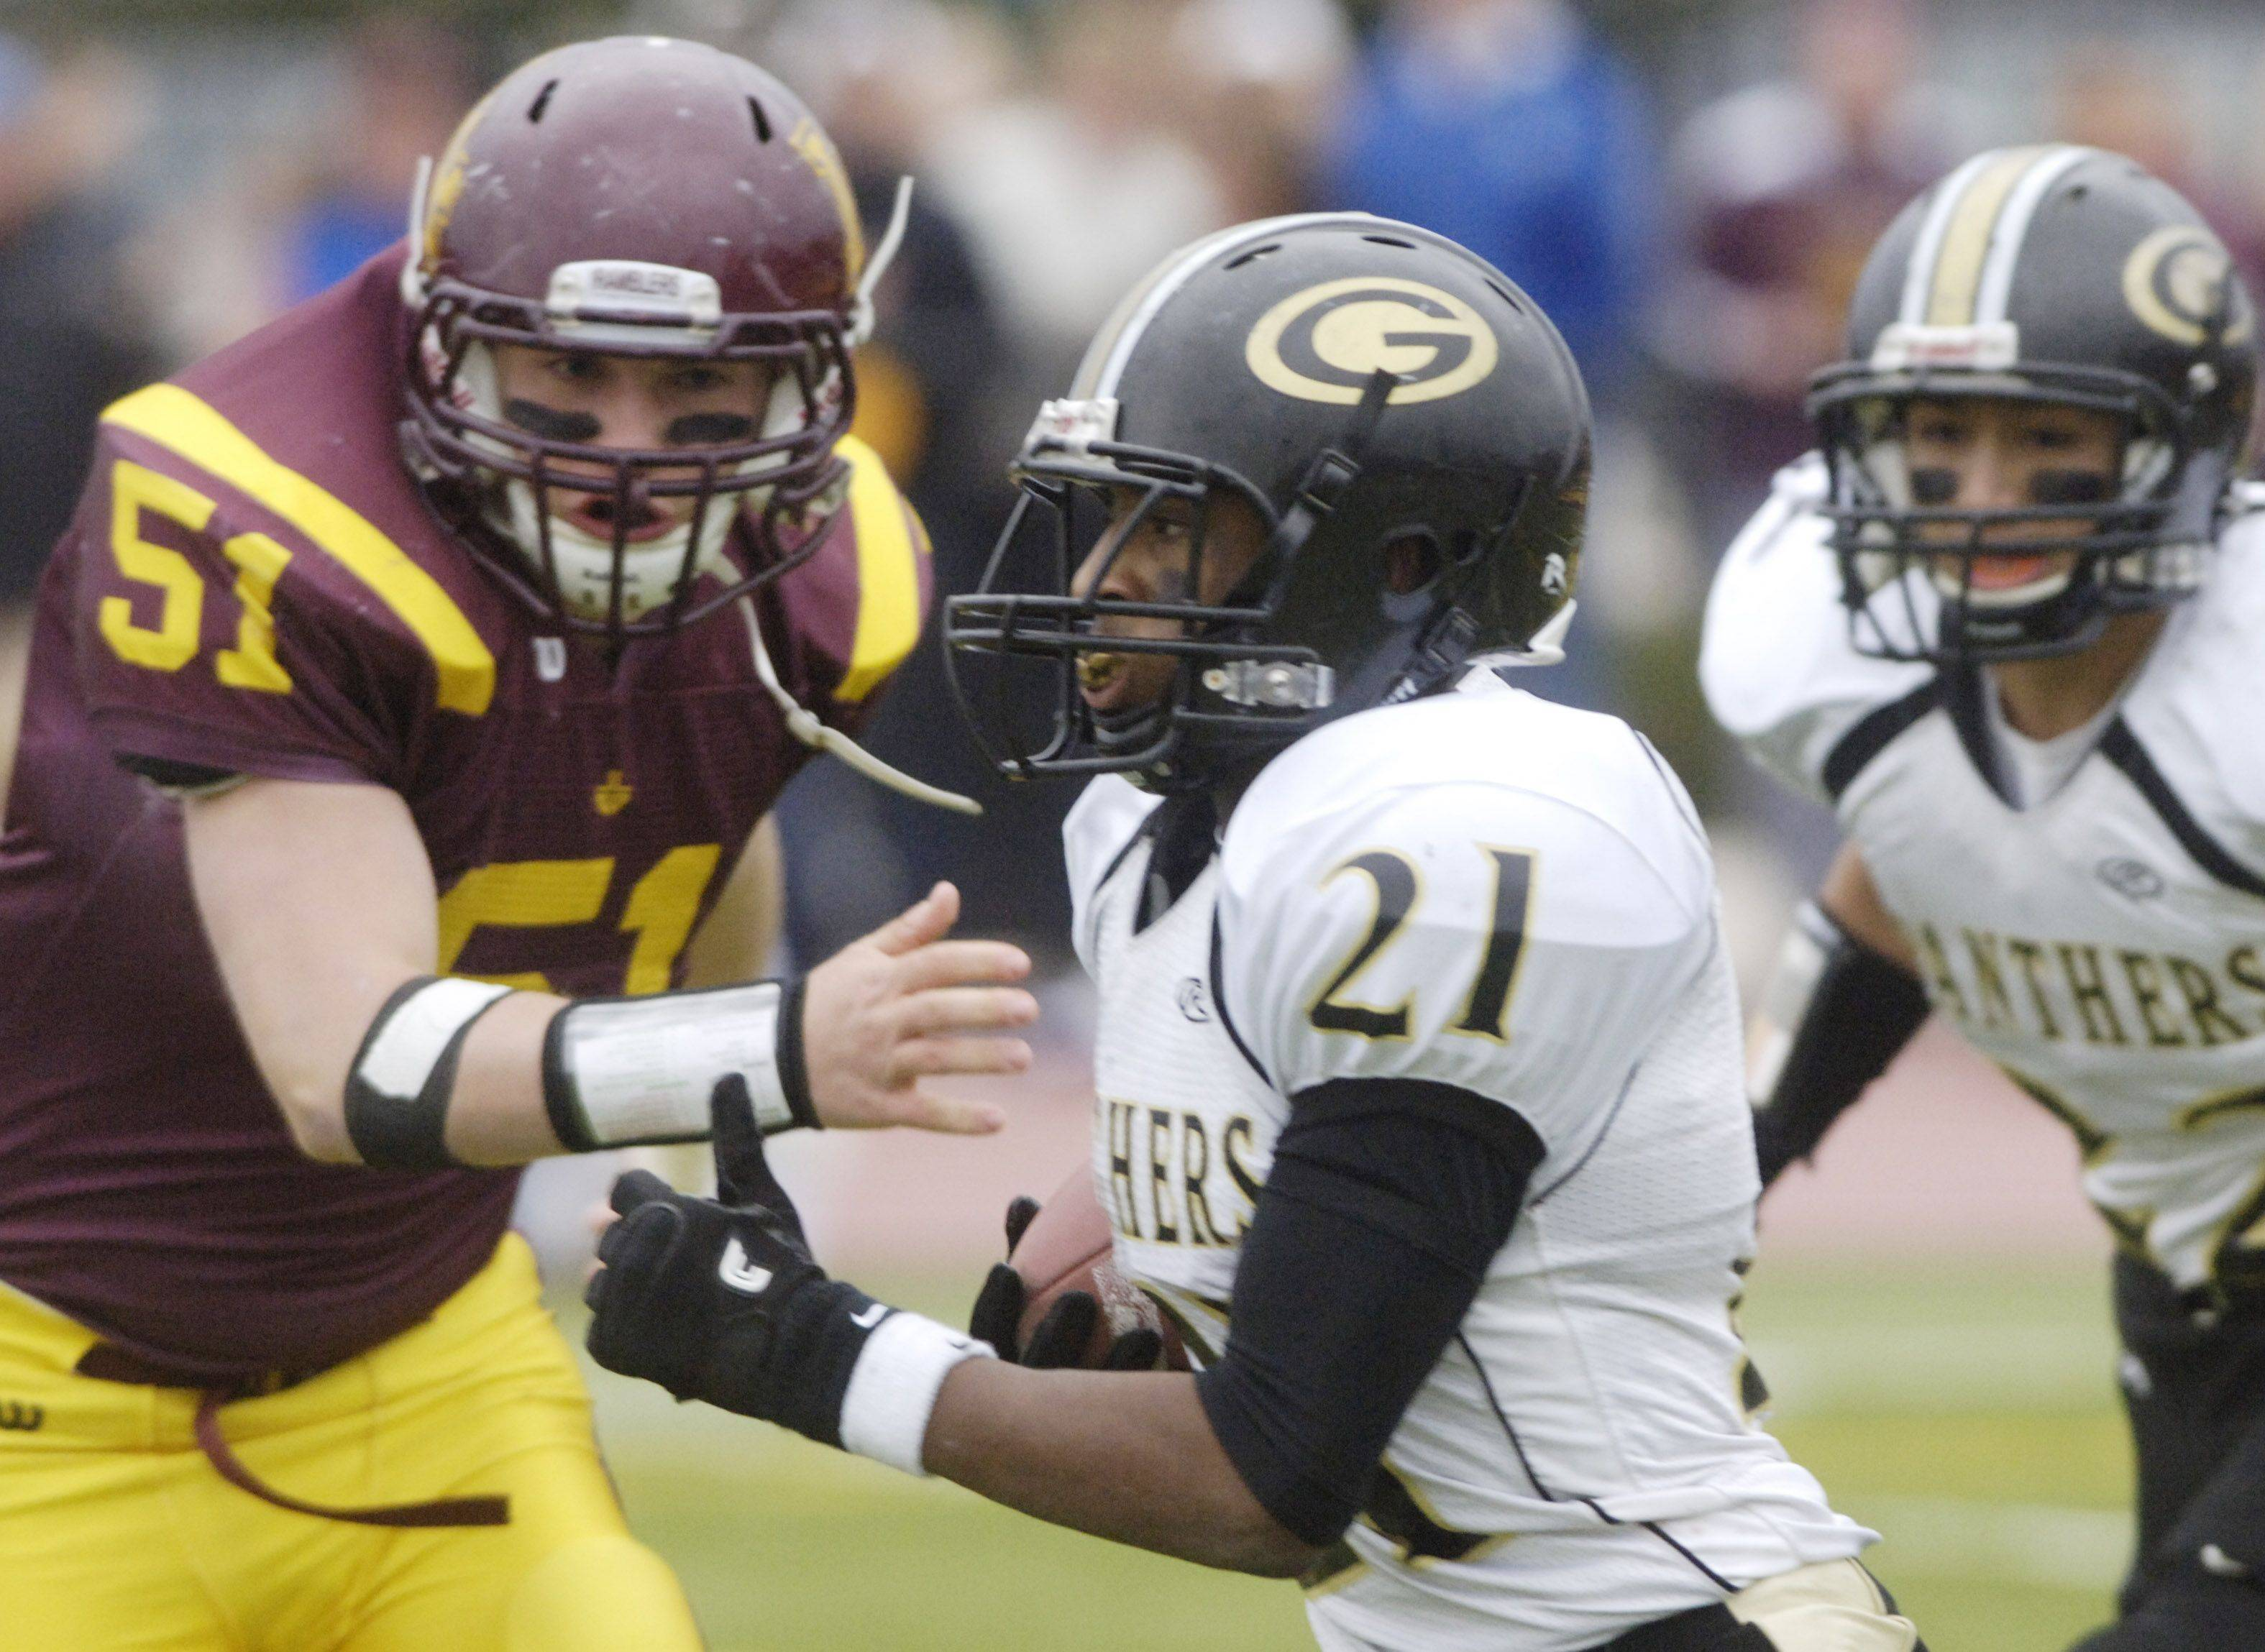 Glenbard North's Justin Jackson carries the ball as Loyola Academy's Jake Miller closes in.